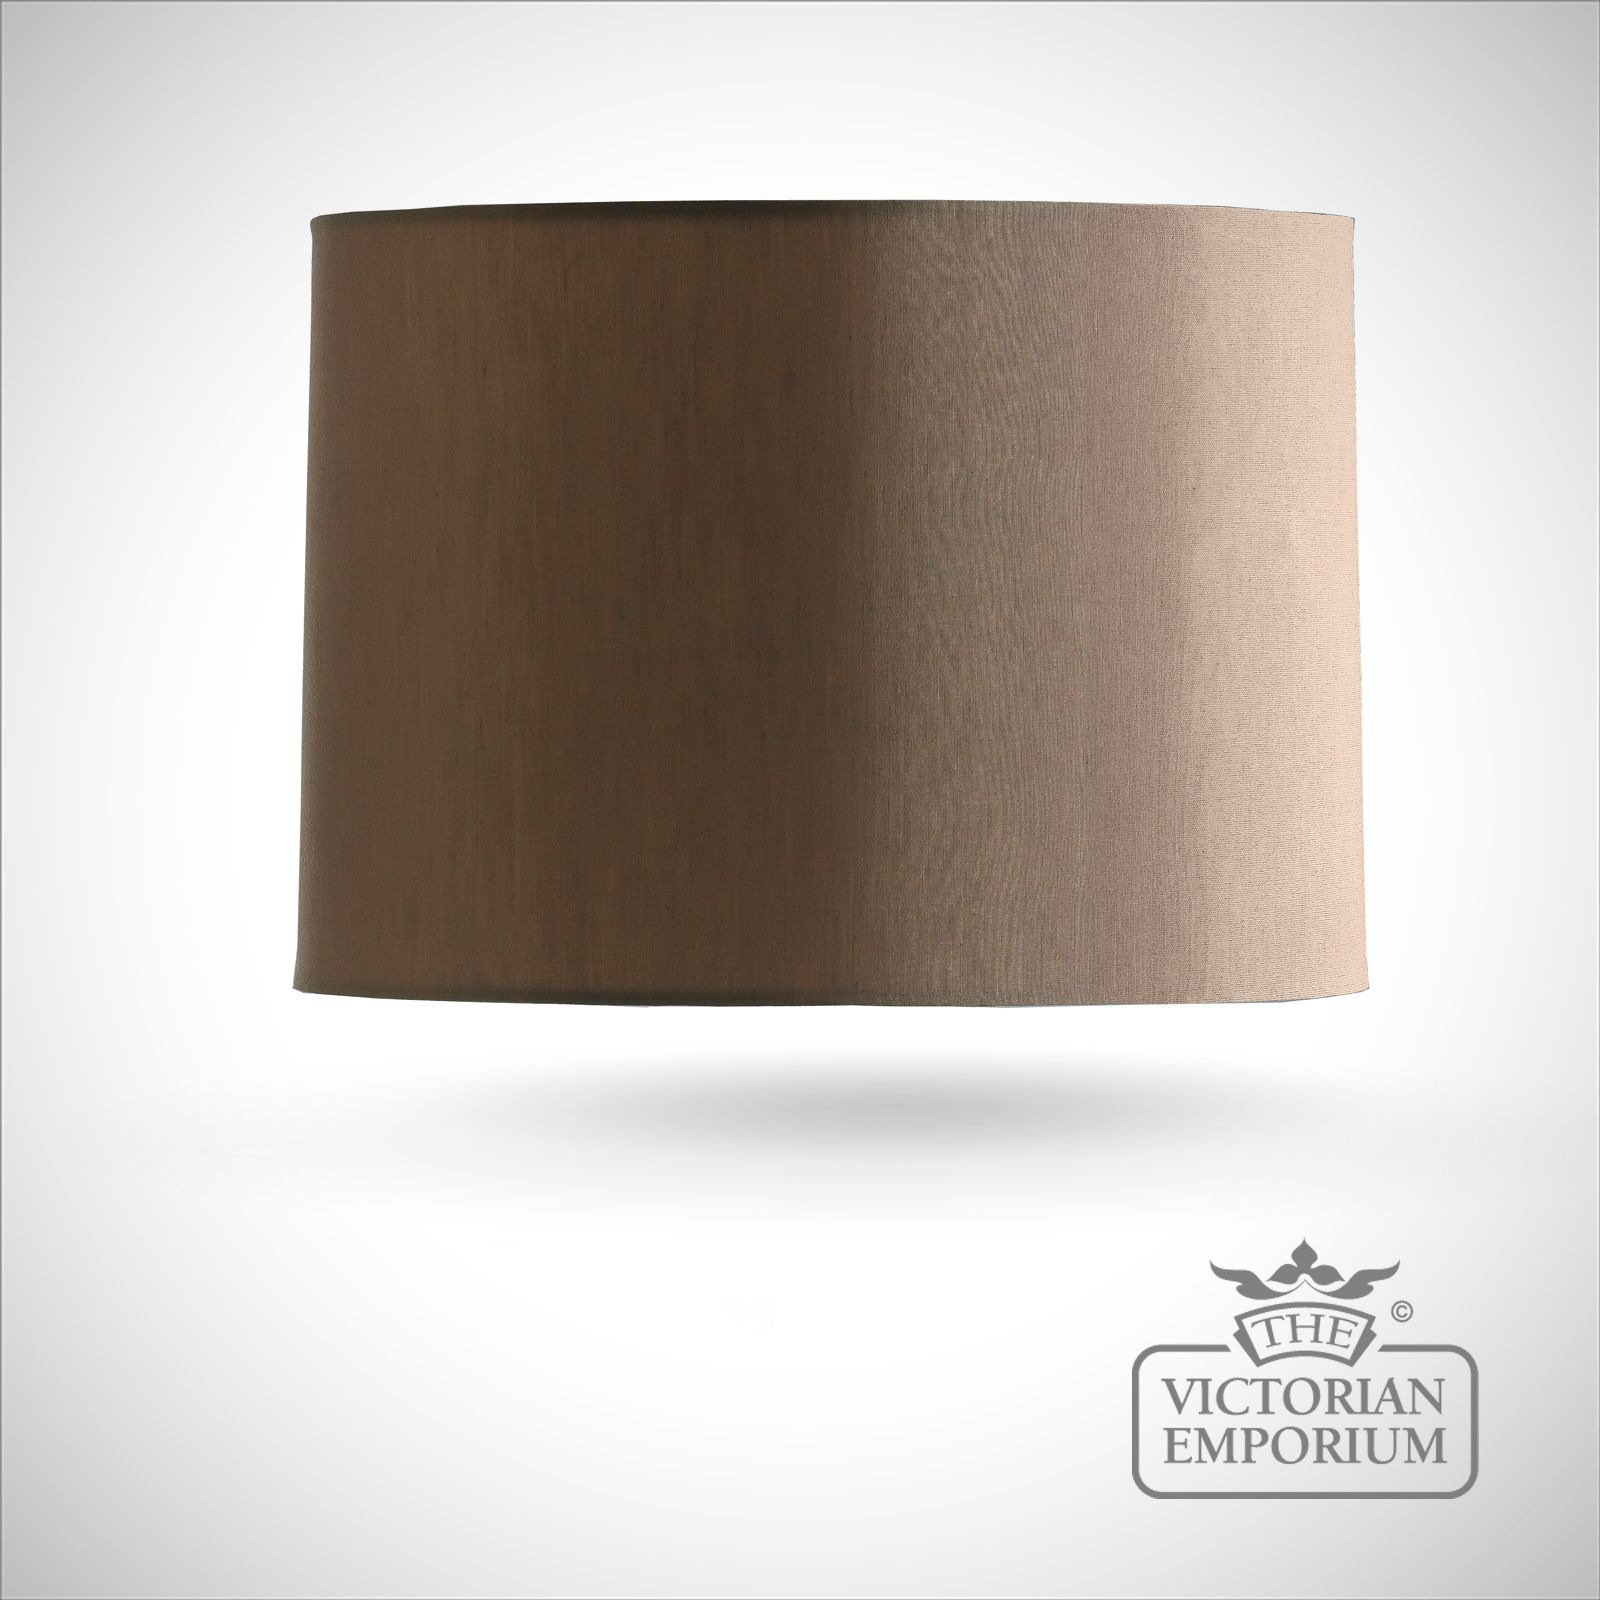 Lamp shades interior lights the victorian emporium bronze cylinder lamp shade 36cm aloadofball Image collections